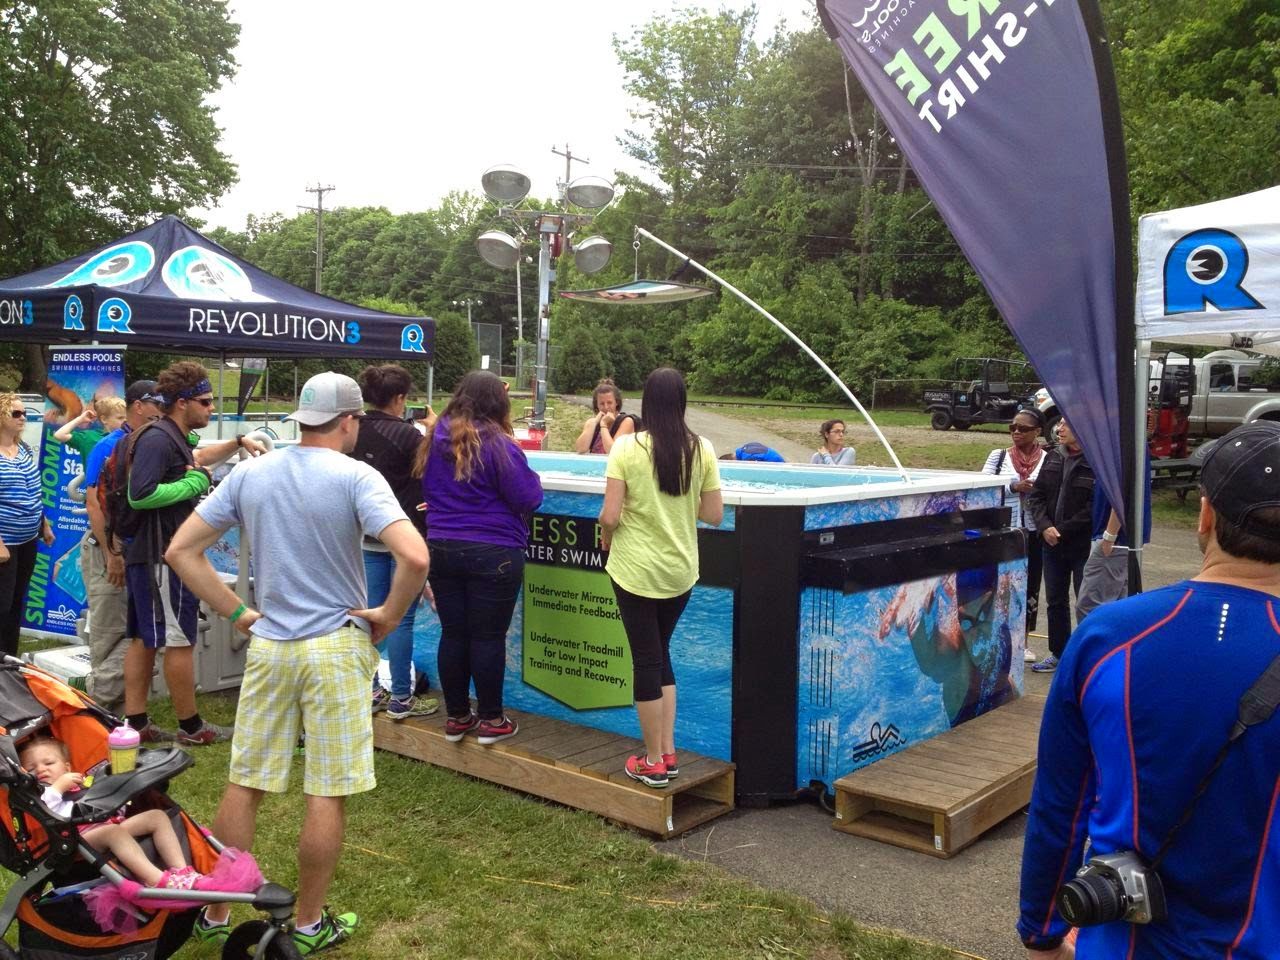 Athletes and spectators watch a test-swim in the Endless Pools Performance model at the REV3 Triathlon at Quassy Amusement Park last weekend.